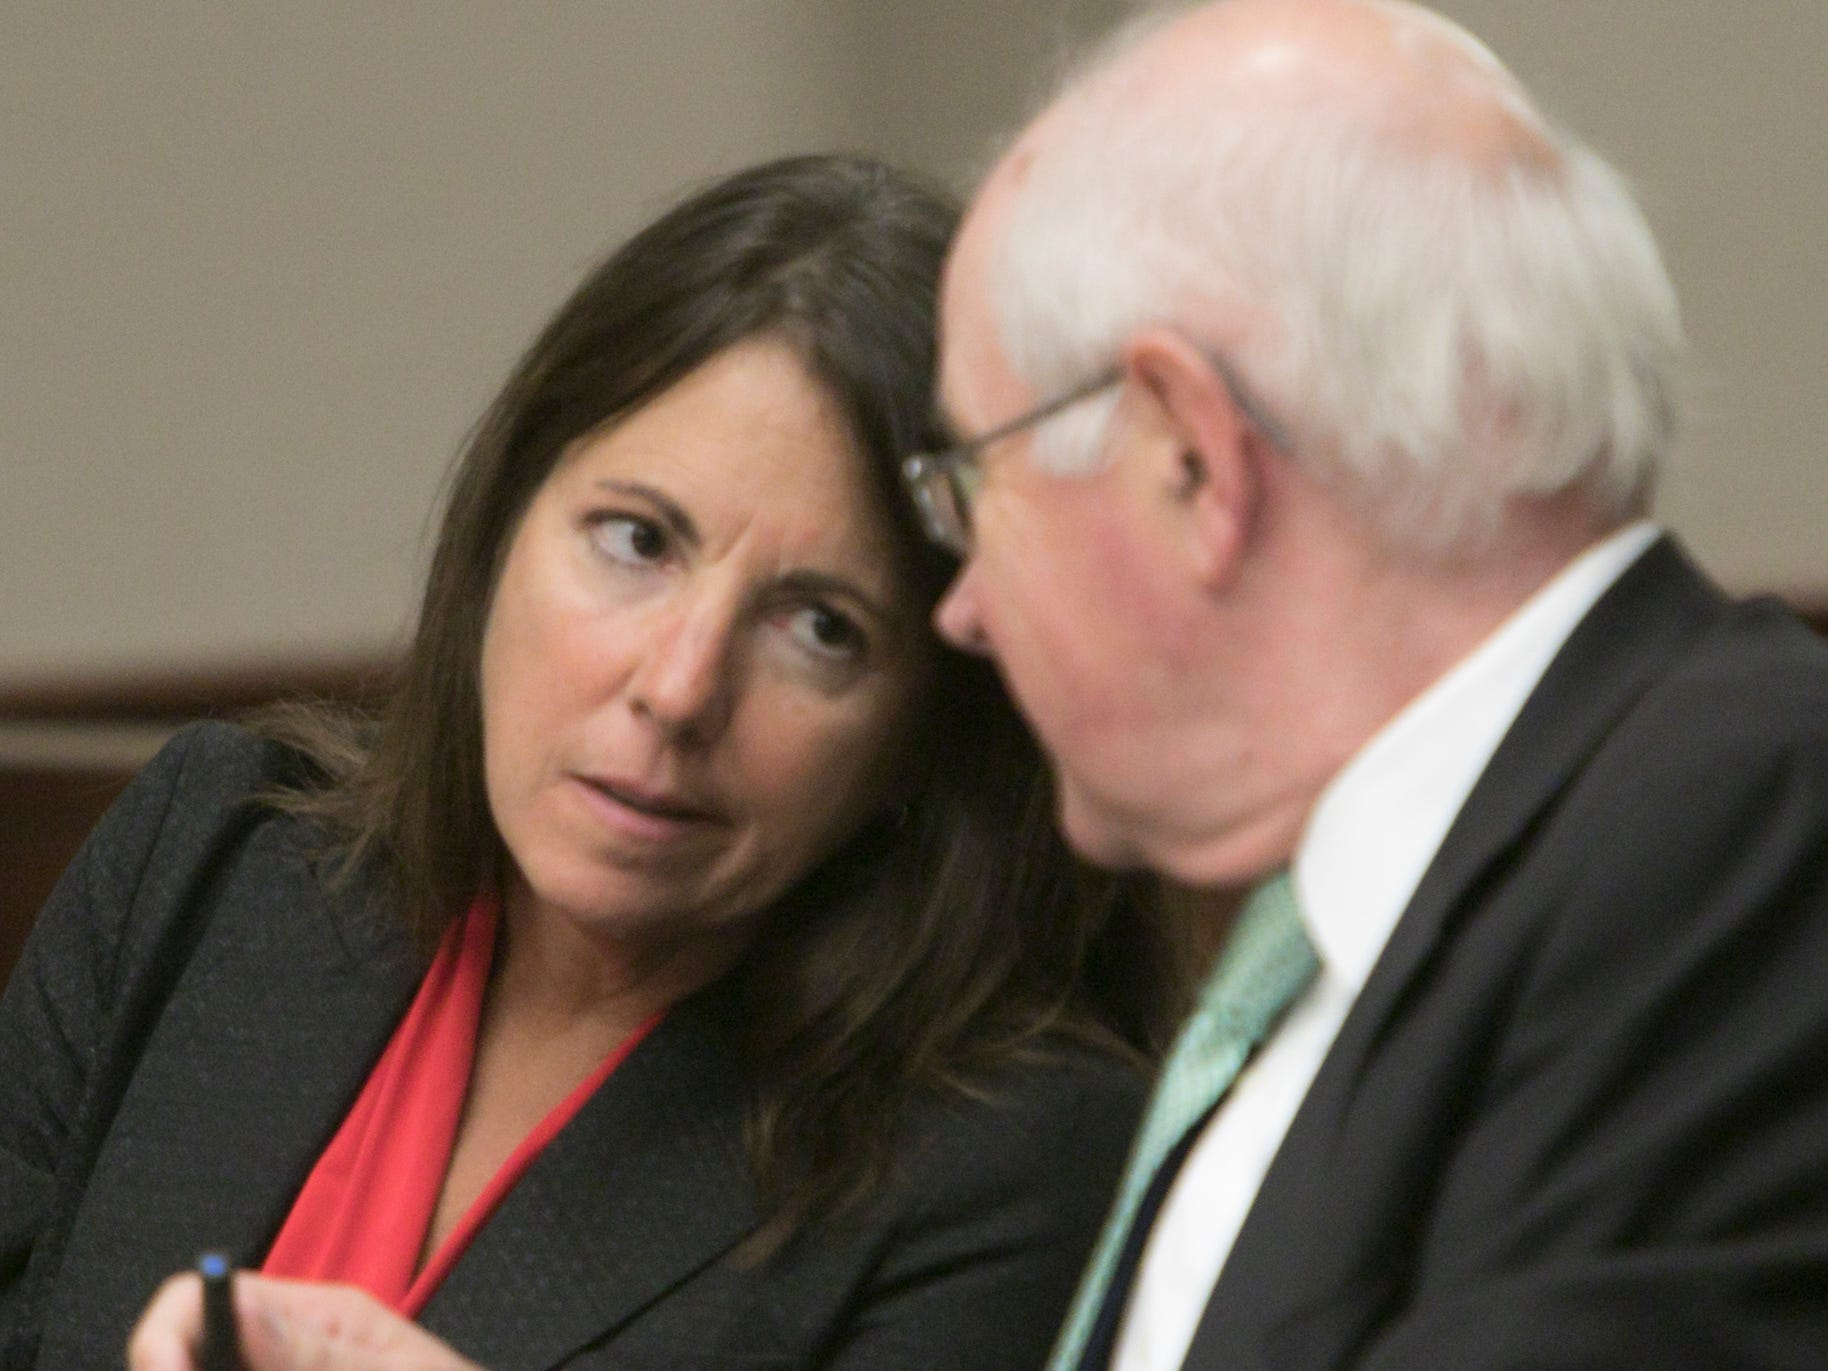 Judge Theresa Brennan speaks with her attorney Dennis Kolenda Thursday, Oct. 4, 2018 in a Judicial Tenure Commission hearing in Livonia.